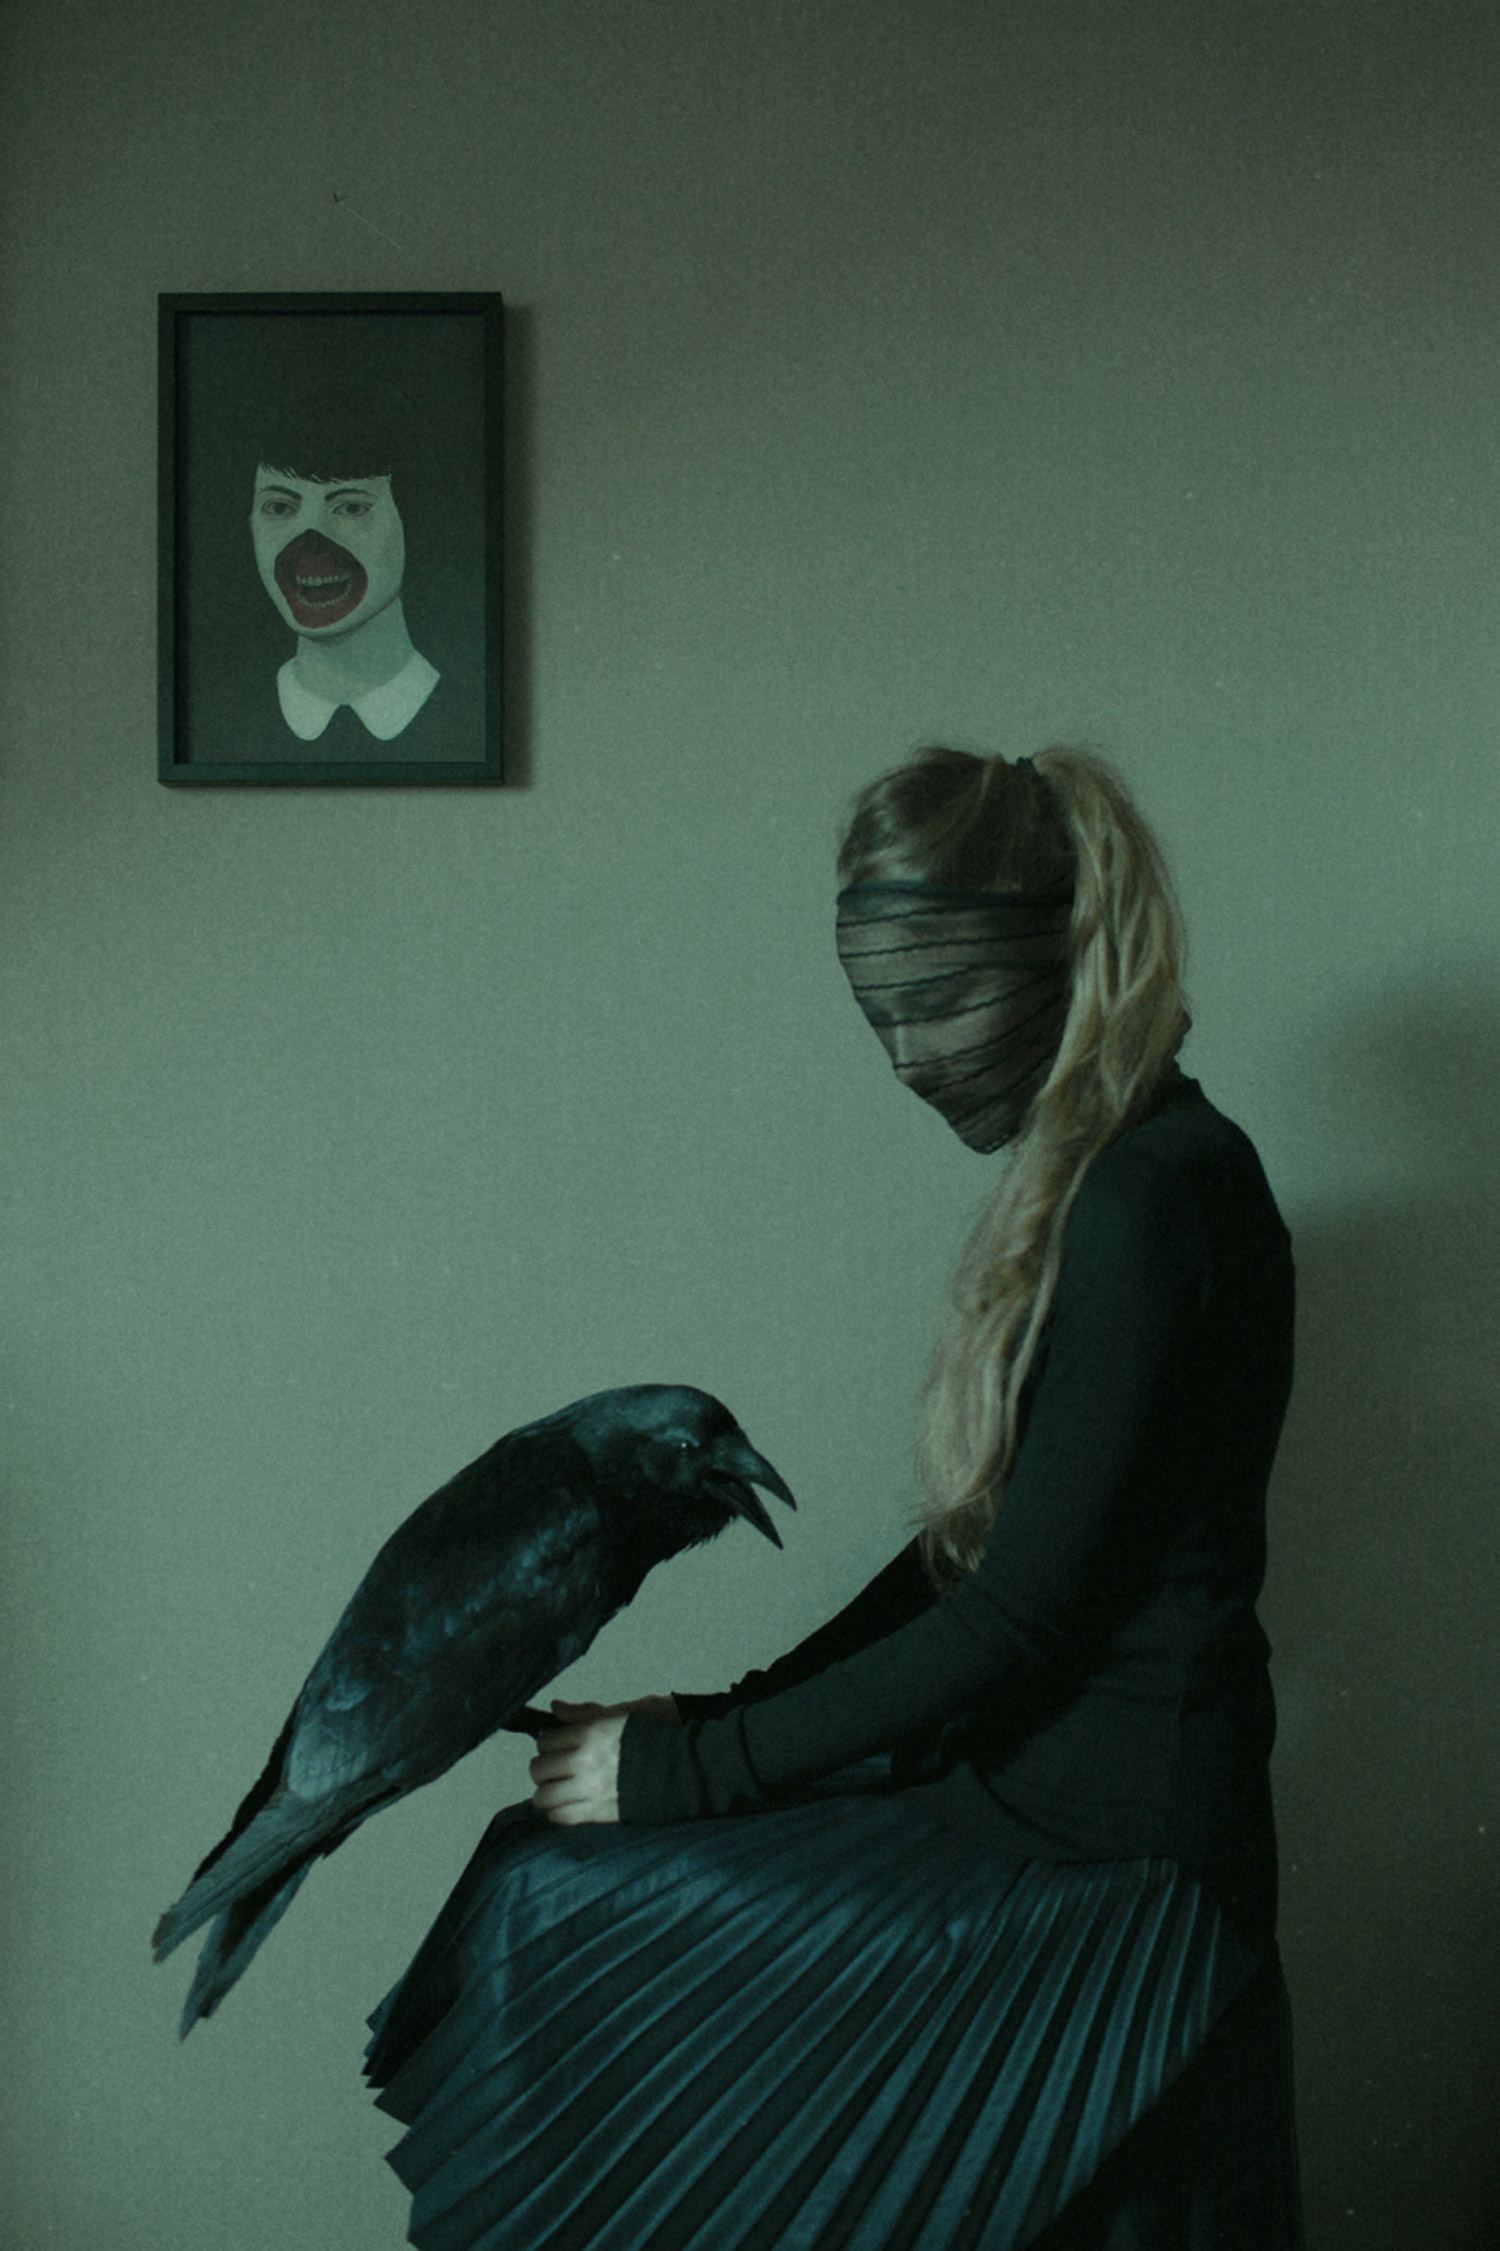 Laura Makabresku - wearing black veil and holding raven